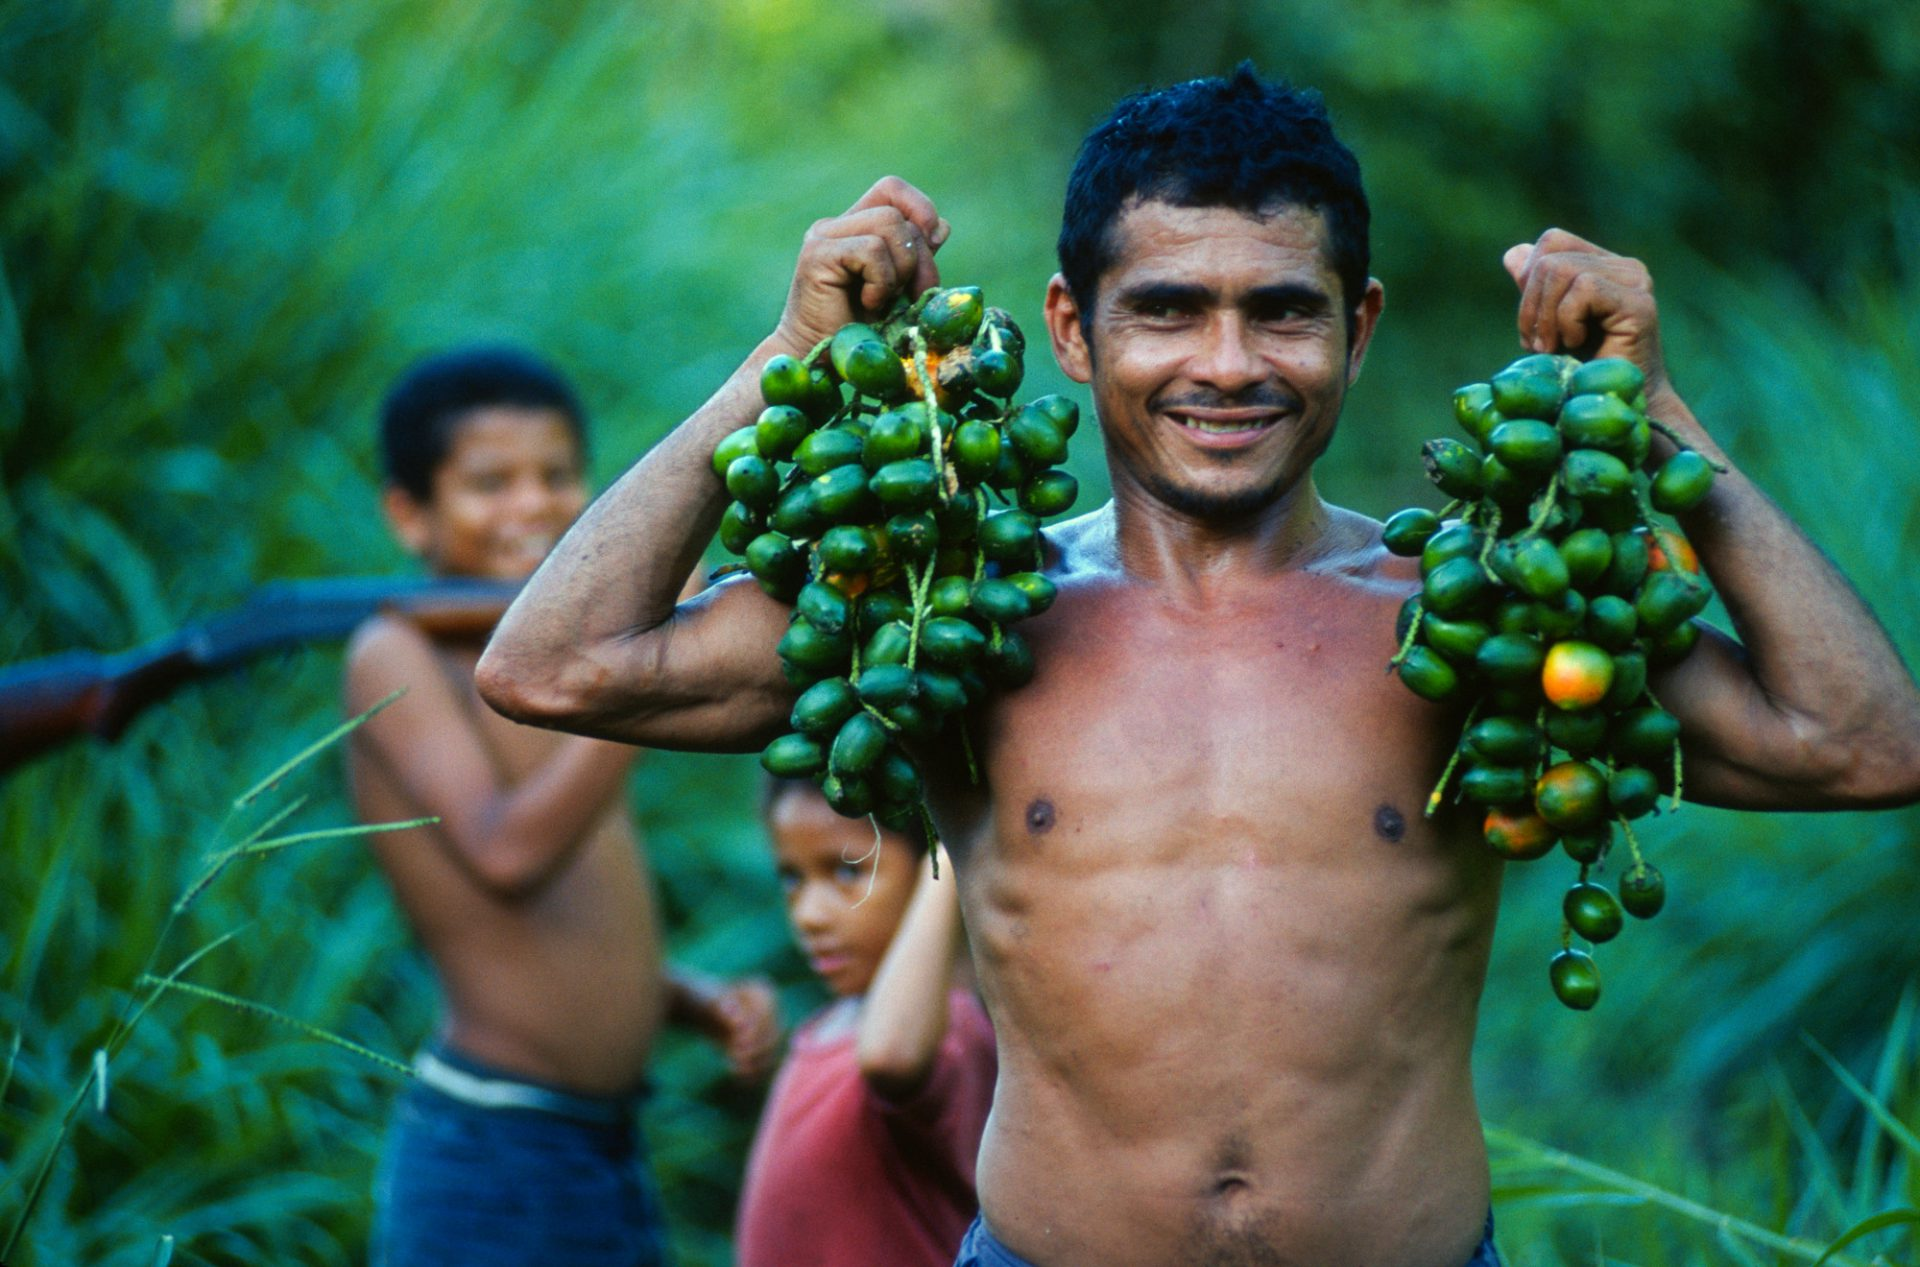 Photo: A Brazilian native shows off native fruits he gathered with his family at Quiandena, a village along the Capim River in the Brazilian Amazon.